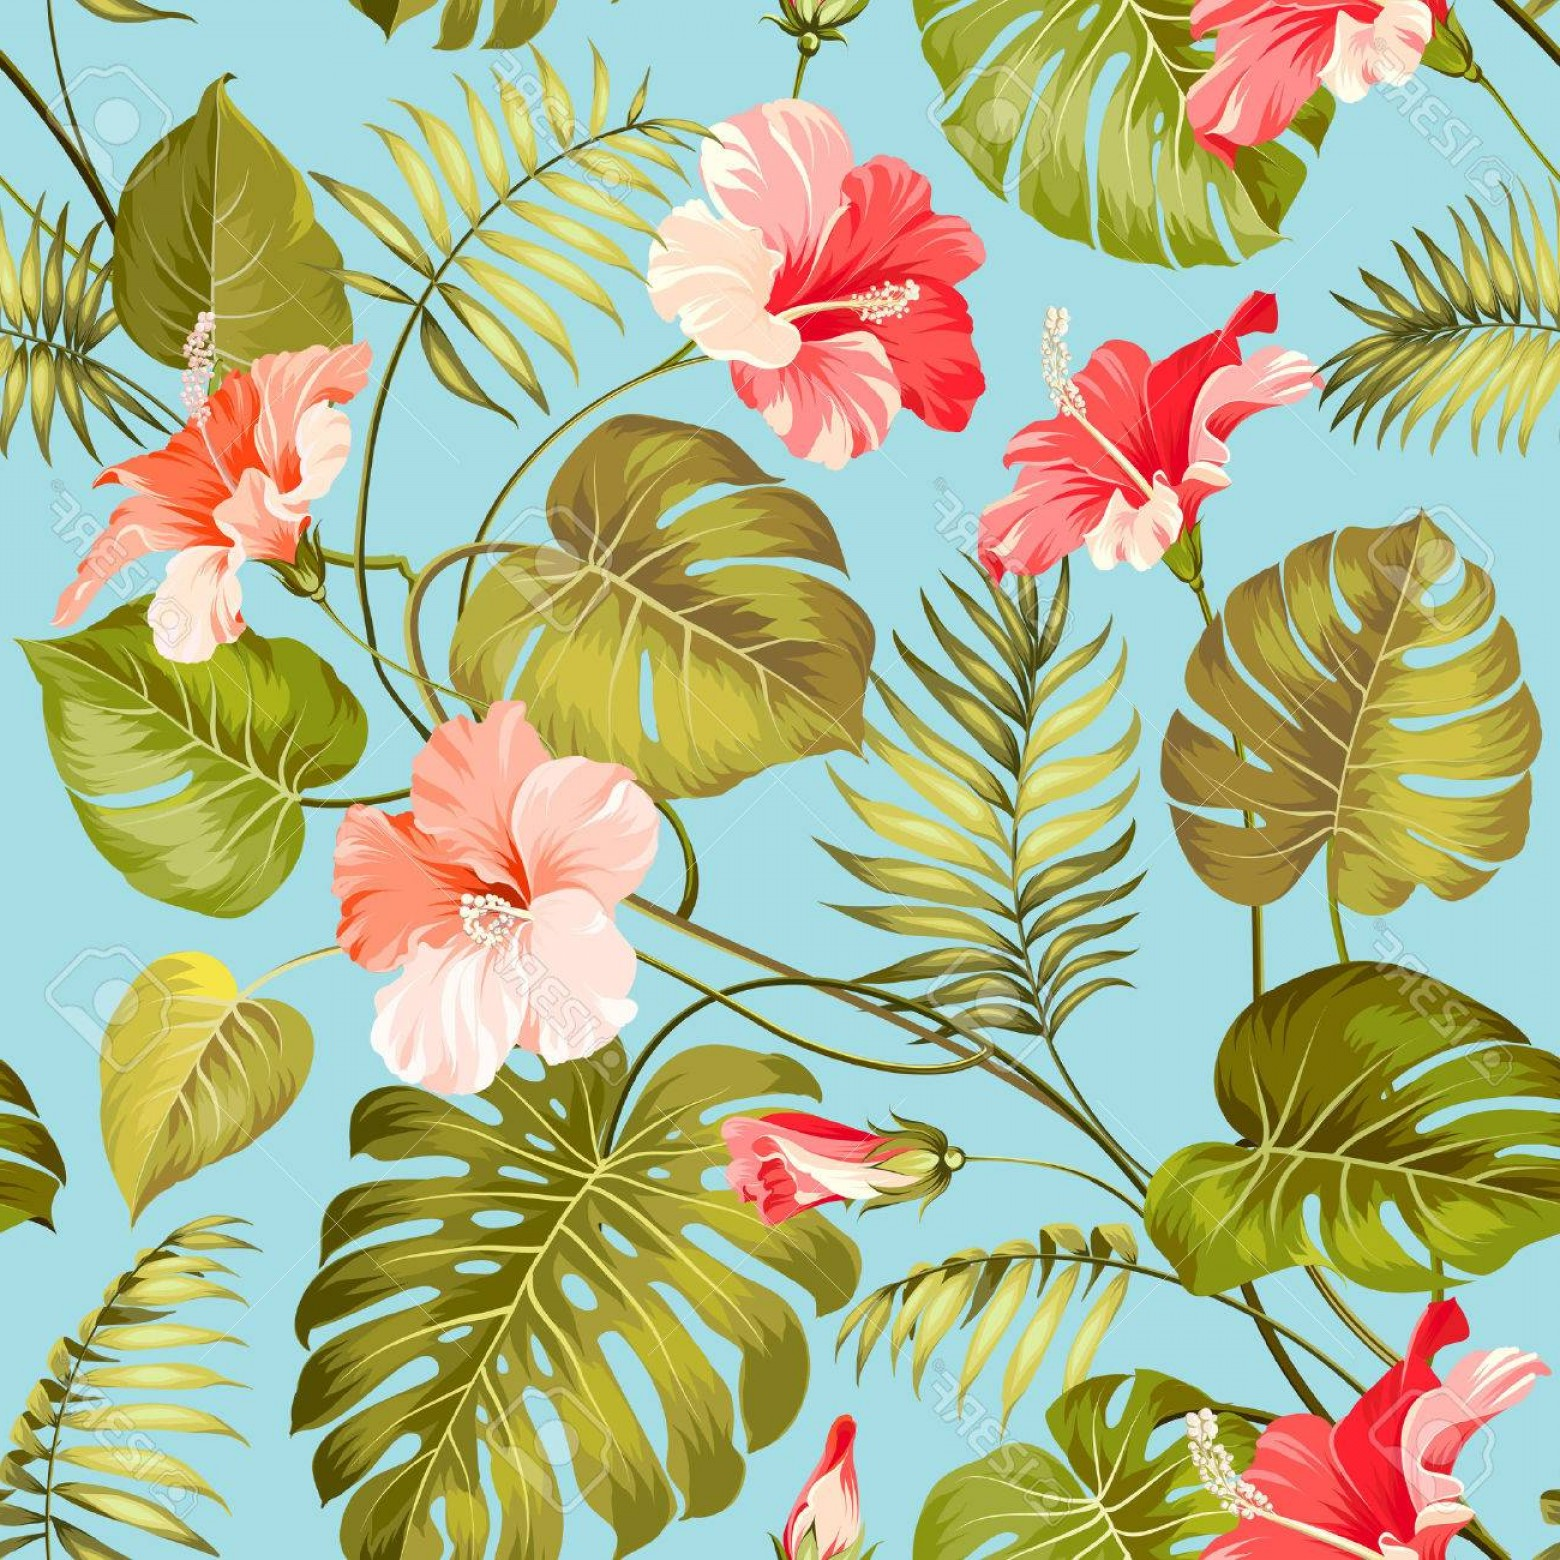 Hawaiian Flower Seamless Vector Pattern: Comfortable Photostock Vector Seamless Tropical Pattern Blossom Flowers For Seamless Pattern Background Vector Illustration